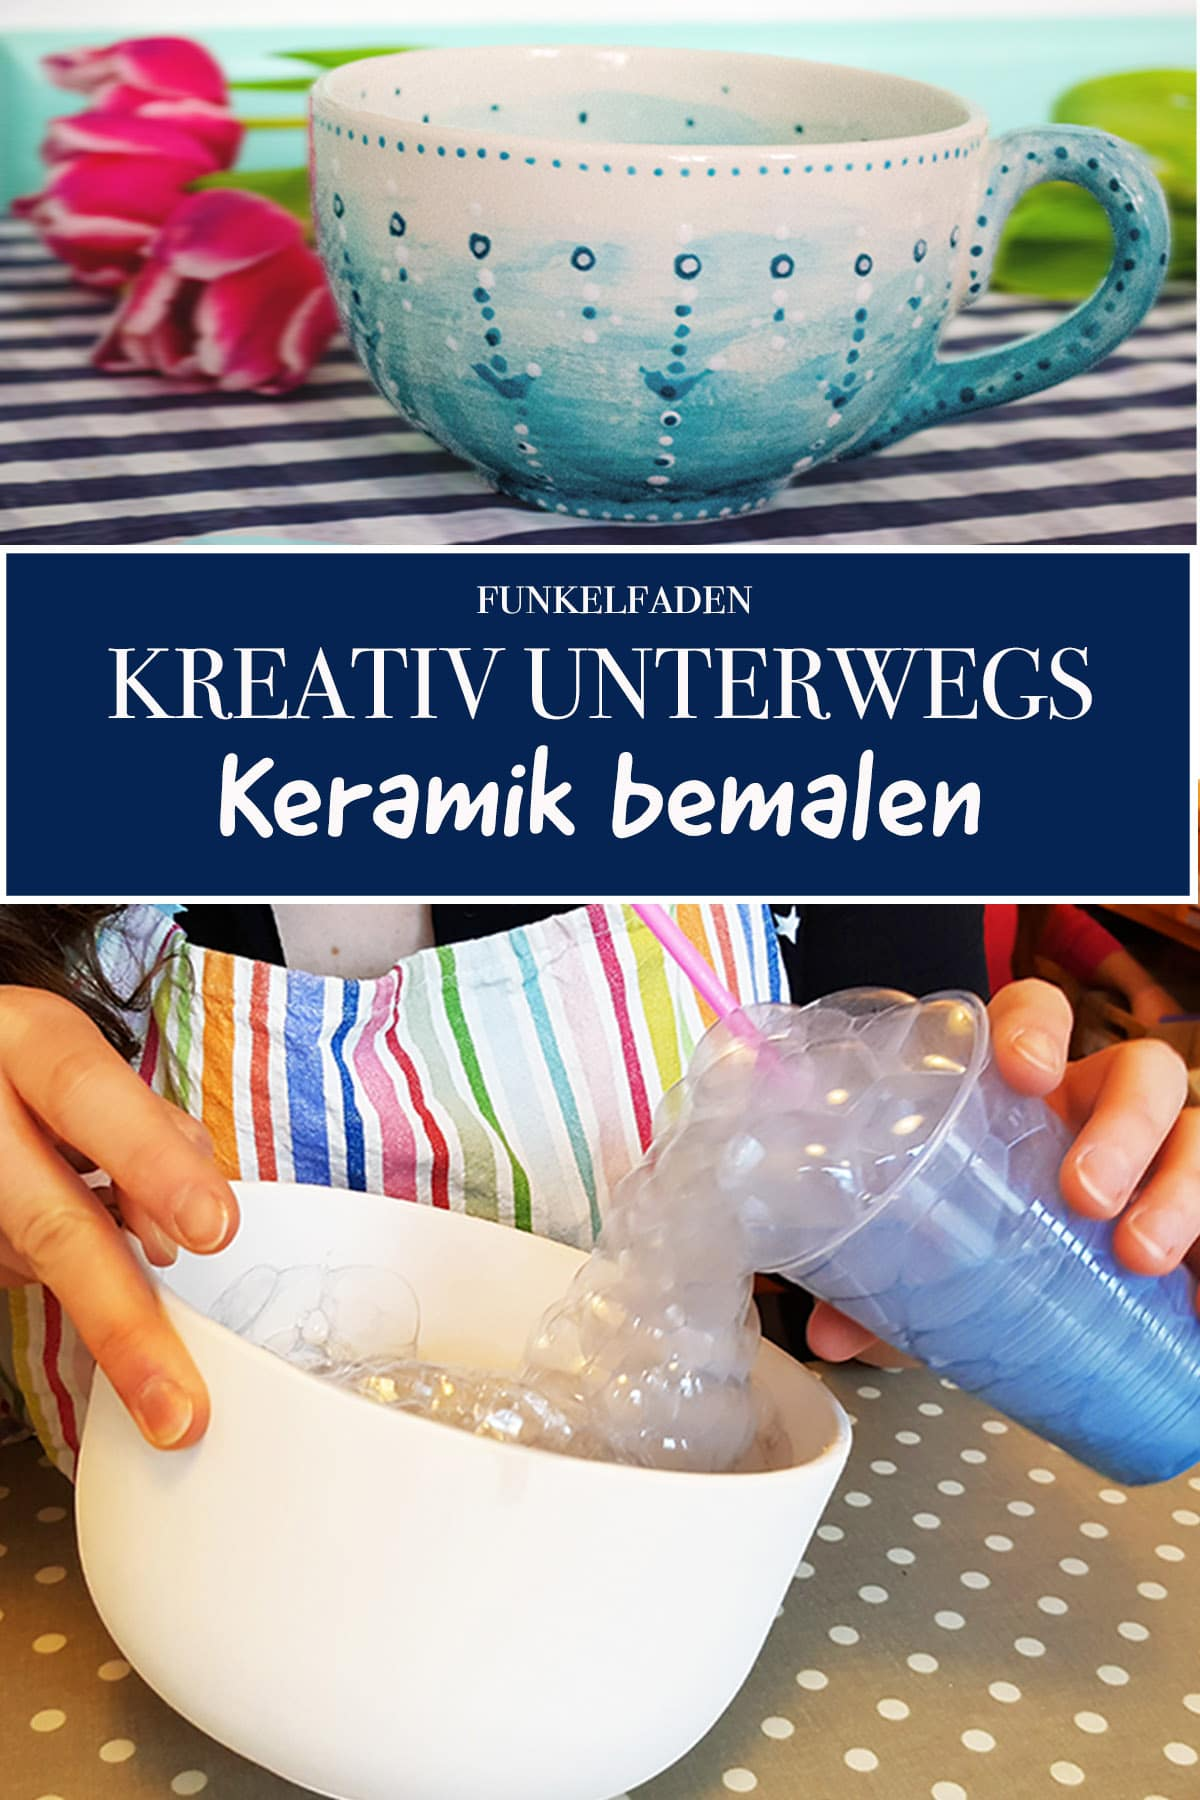 Paint Your Style - Keramik bemalen in Berlin - DIY Workshop